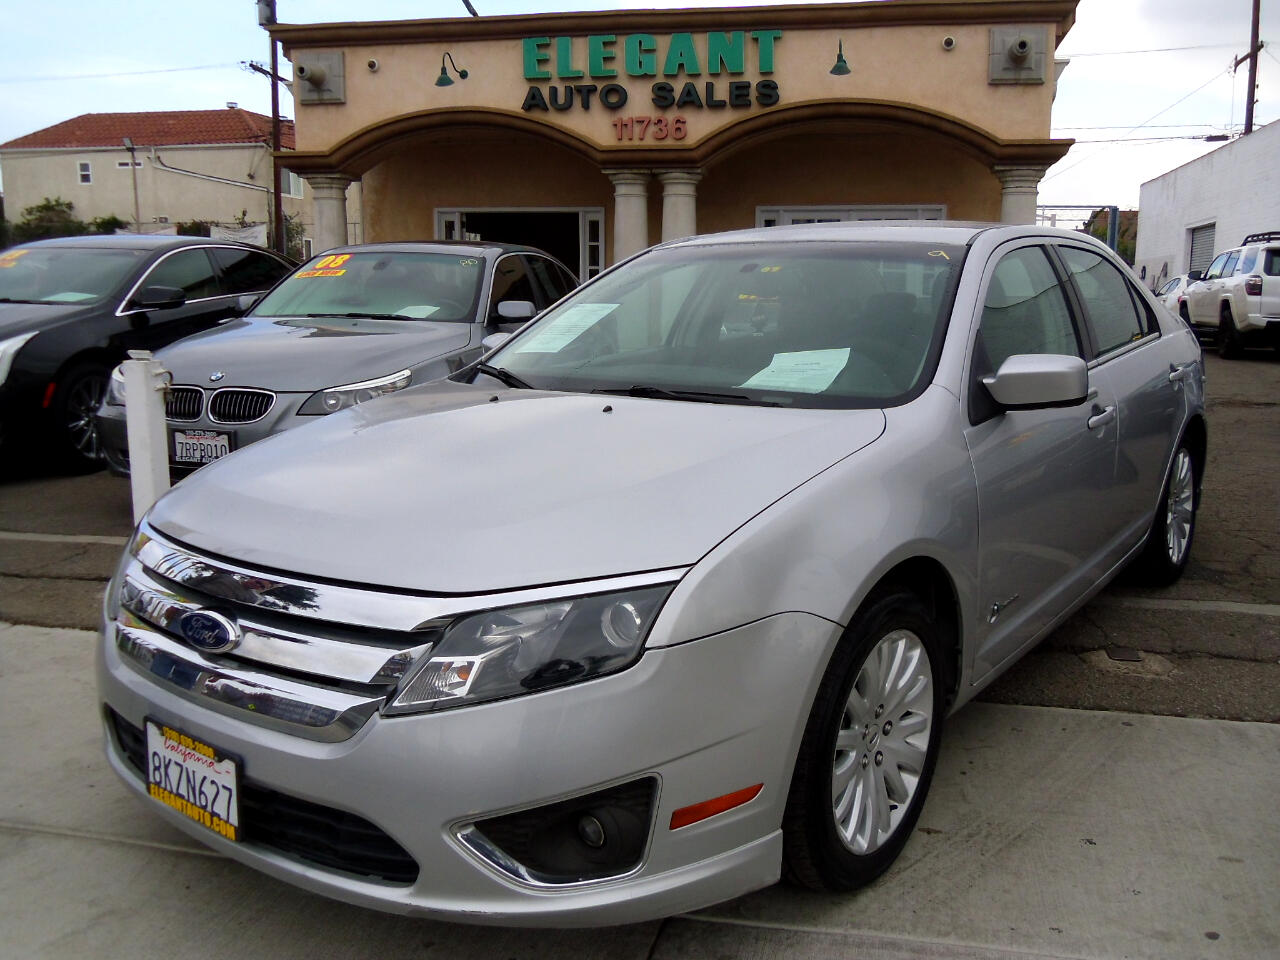 Ford Fusion 4dr Sdn Hybrid FWD 2010